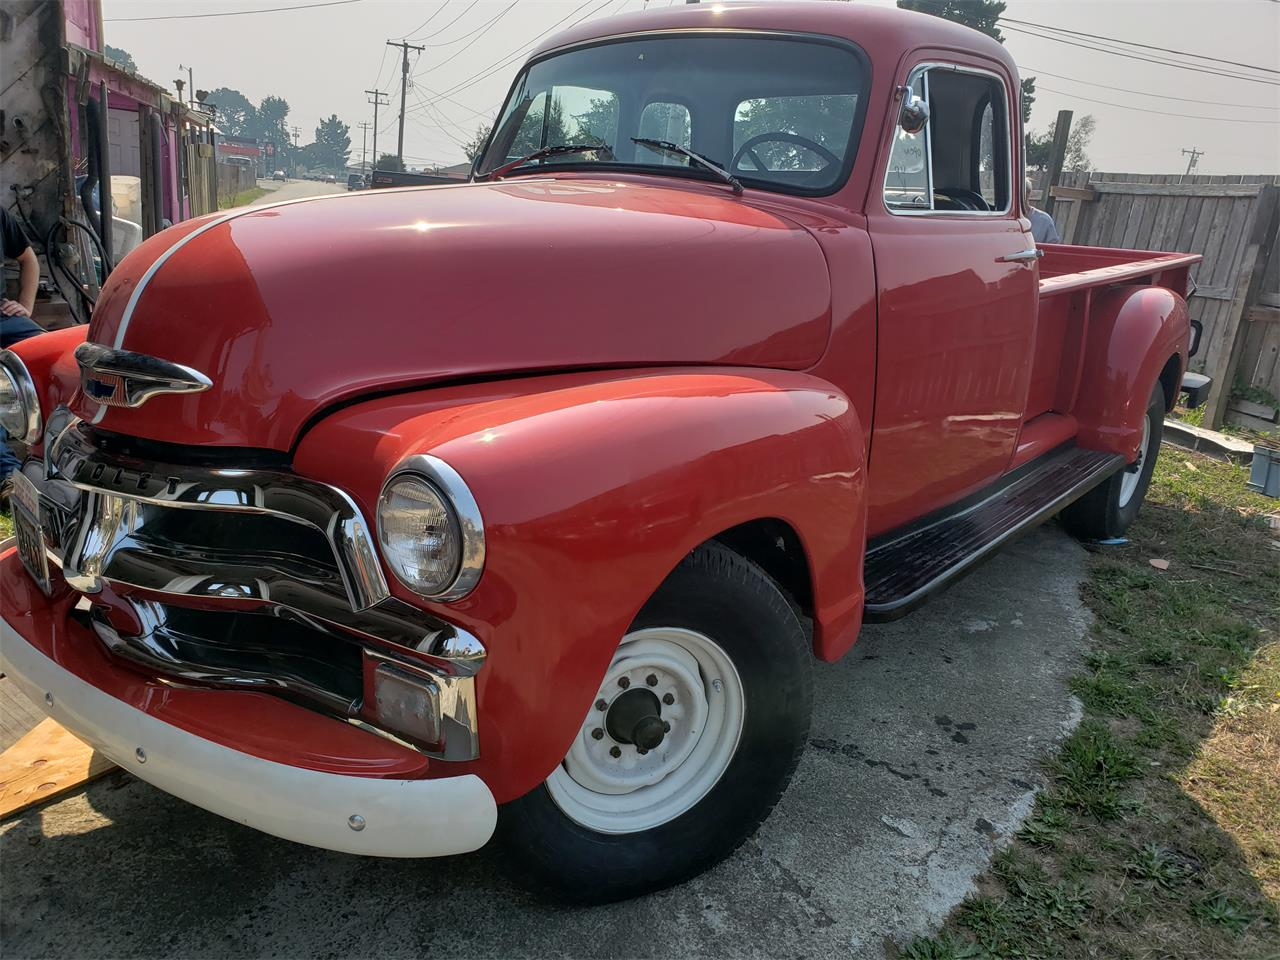 1954 Chevrolet 3600 (CC-1419002) for sale in Crescent City, CA